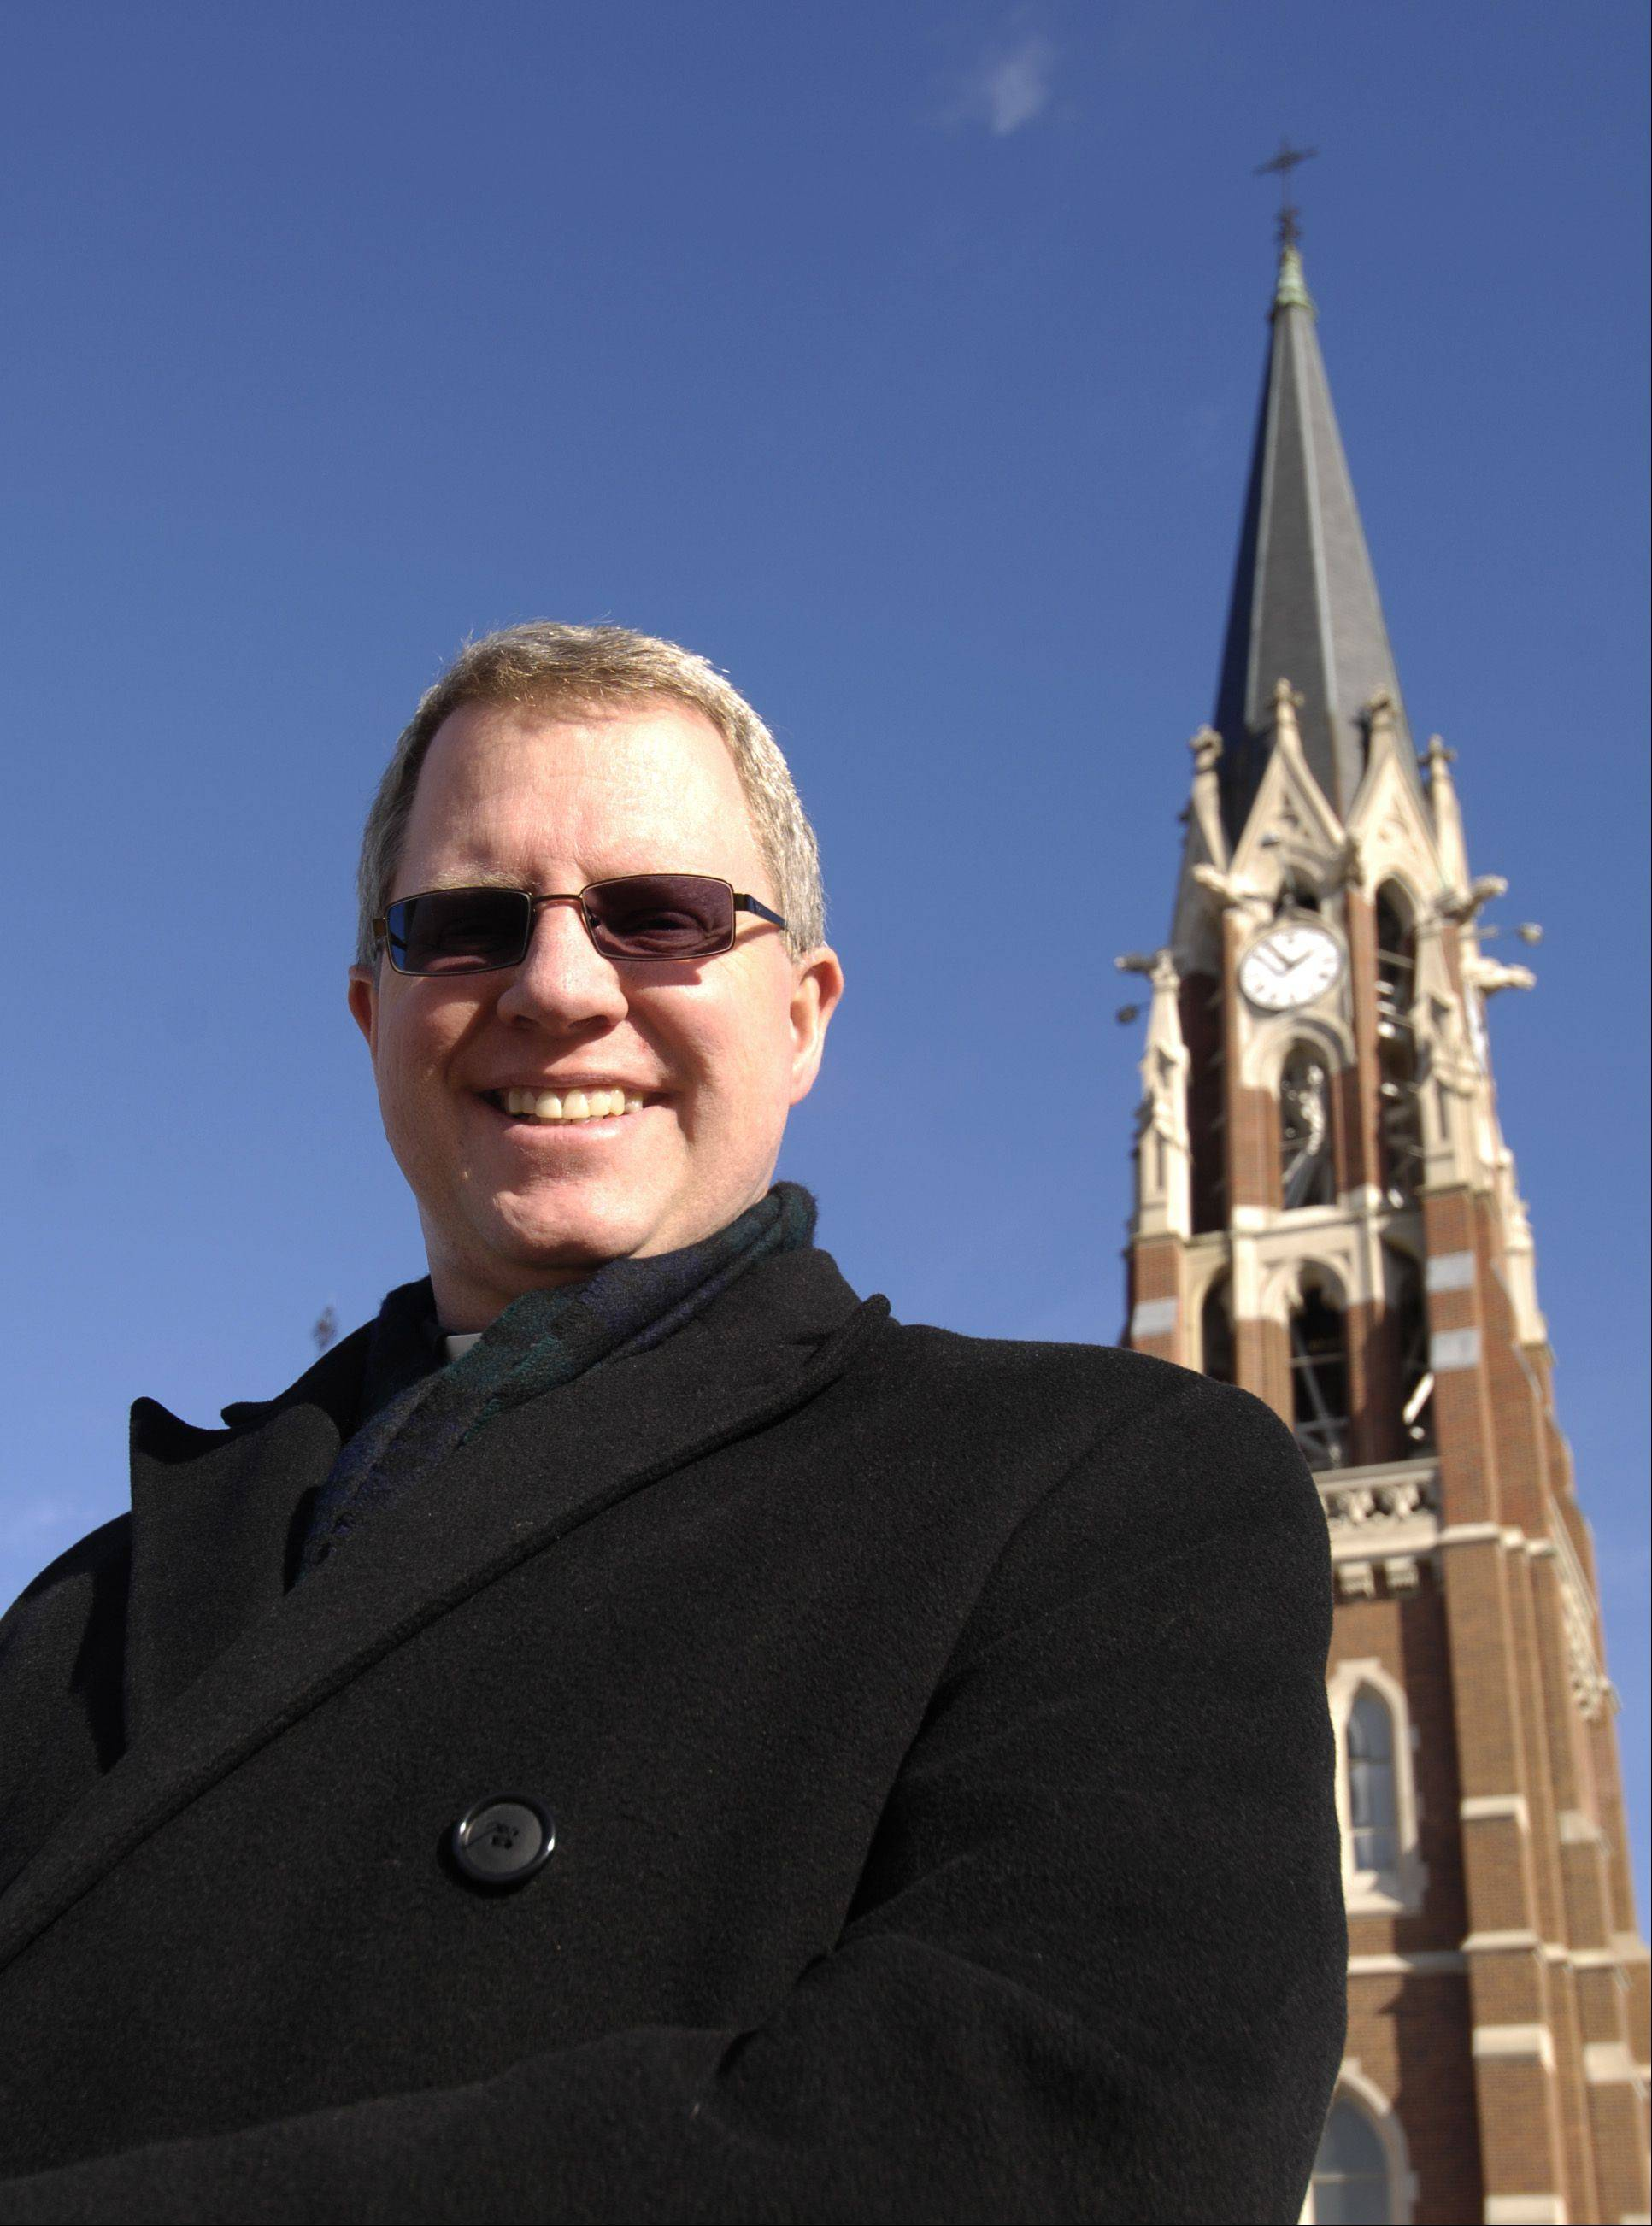 The Rev. Tom Milota of Ss. Peter and Paul church in Naperville. The church is using a gift to refurbish its bells.